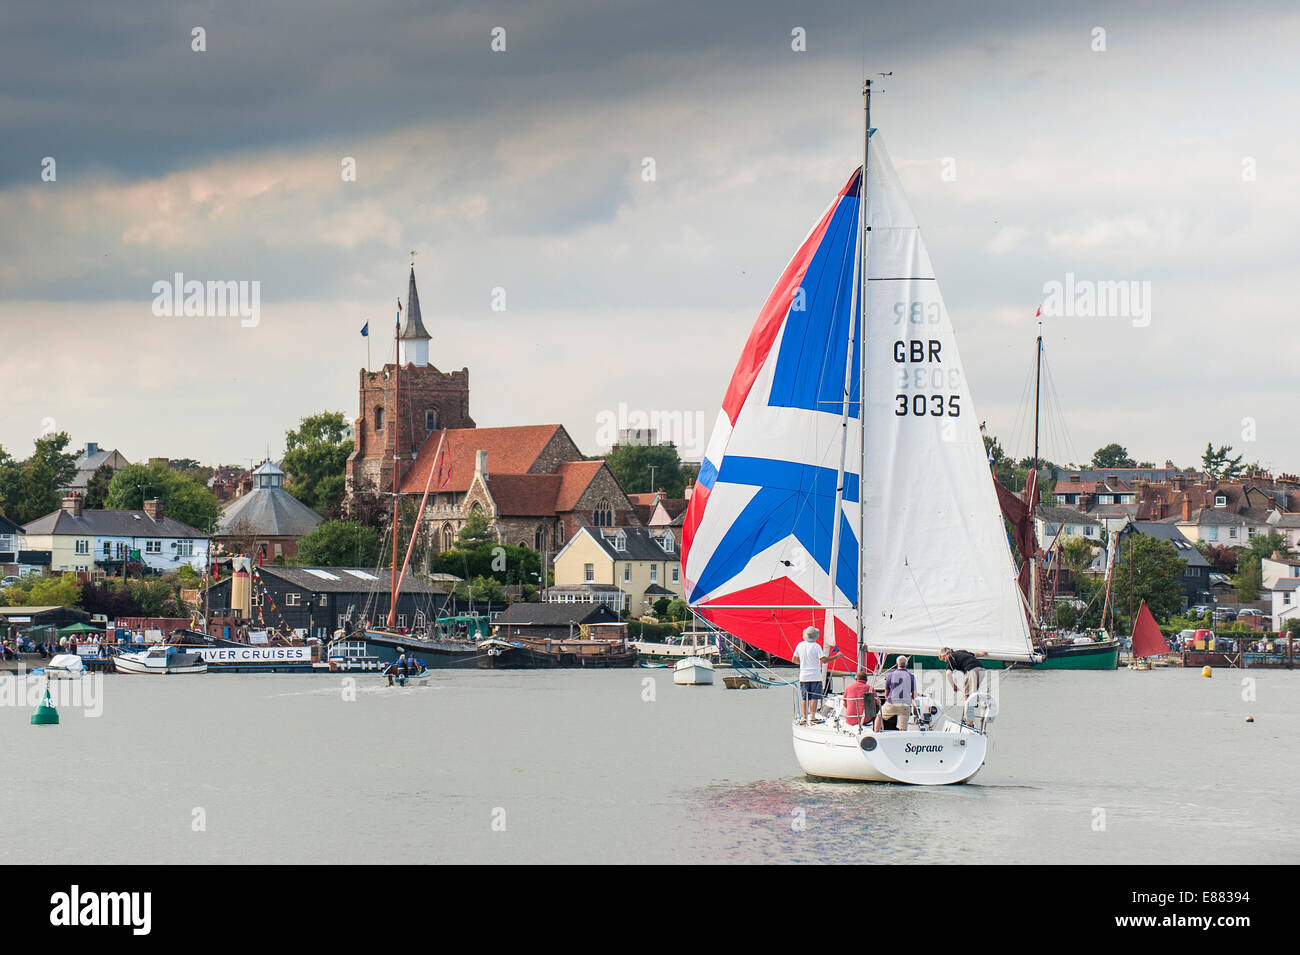 A sailboat usung a colourful spinnaker as  participates in the spectacular Parade of Sail at the Maldon Regatta - Stock Image